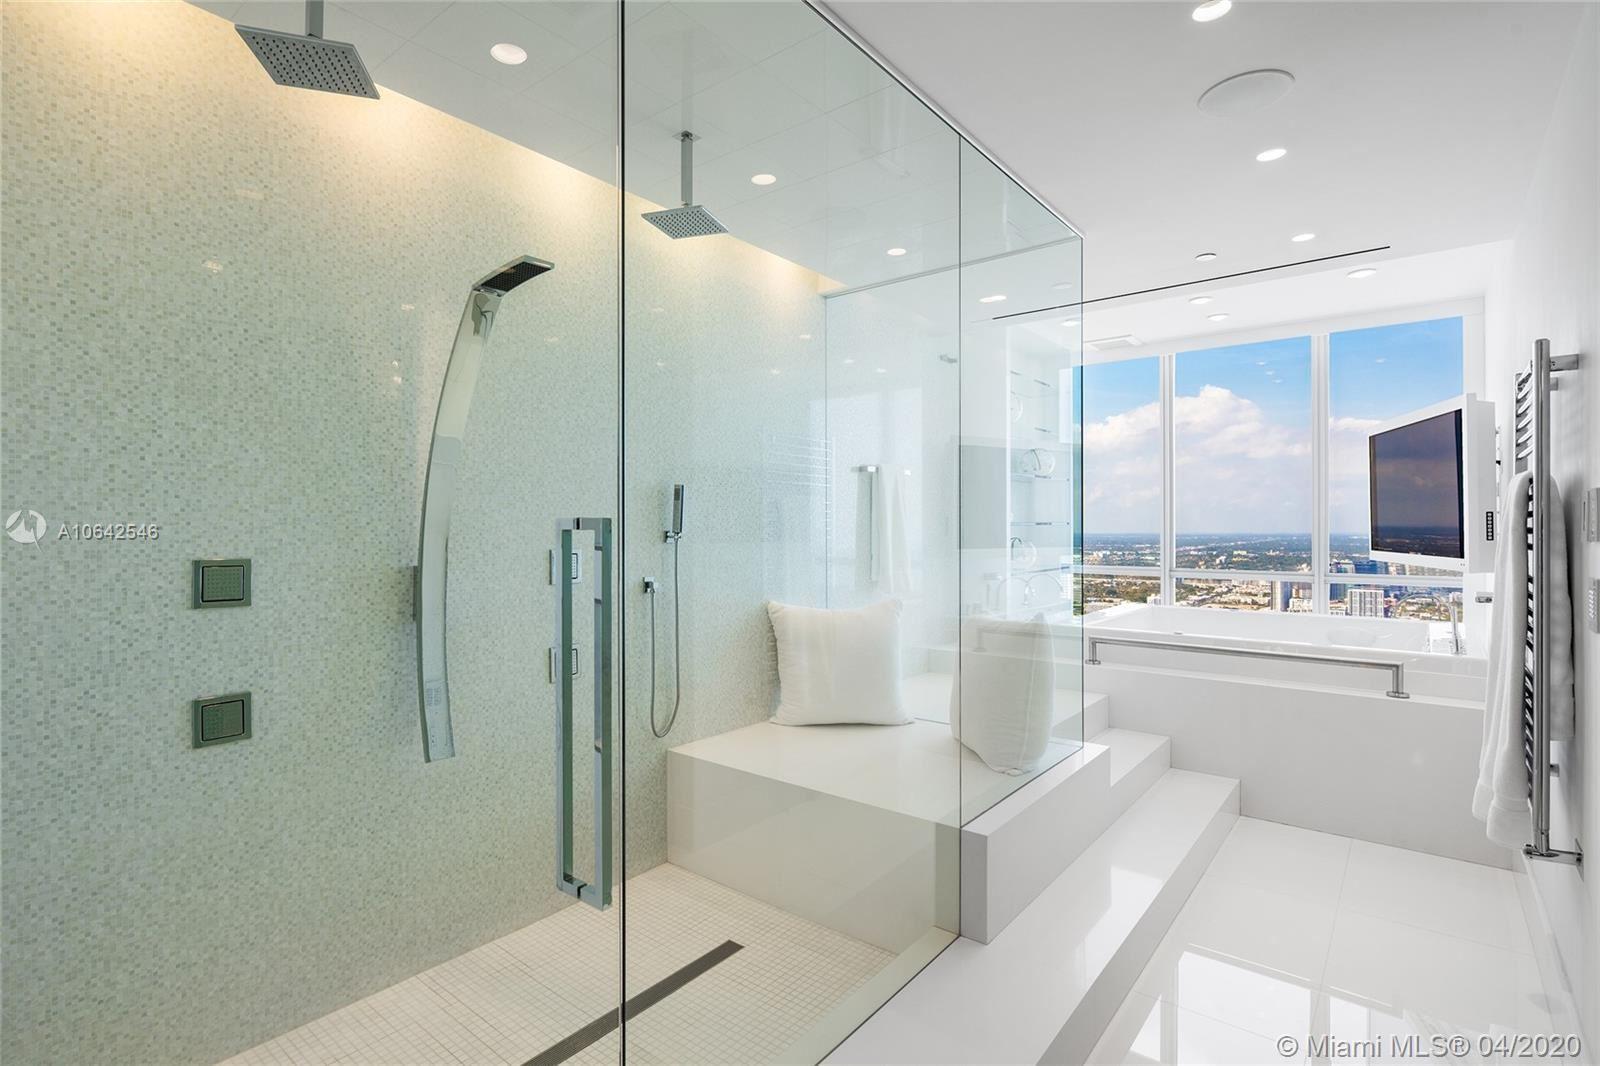 Photo 26 of Listing MLS a10642546 in 1100 Biscayne Blvd #6401 Miami FL 33132